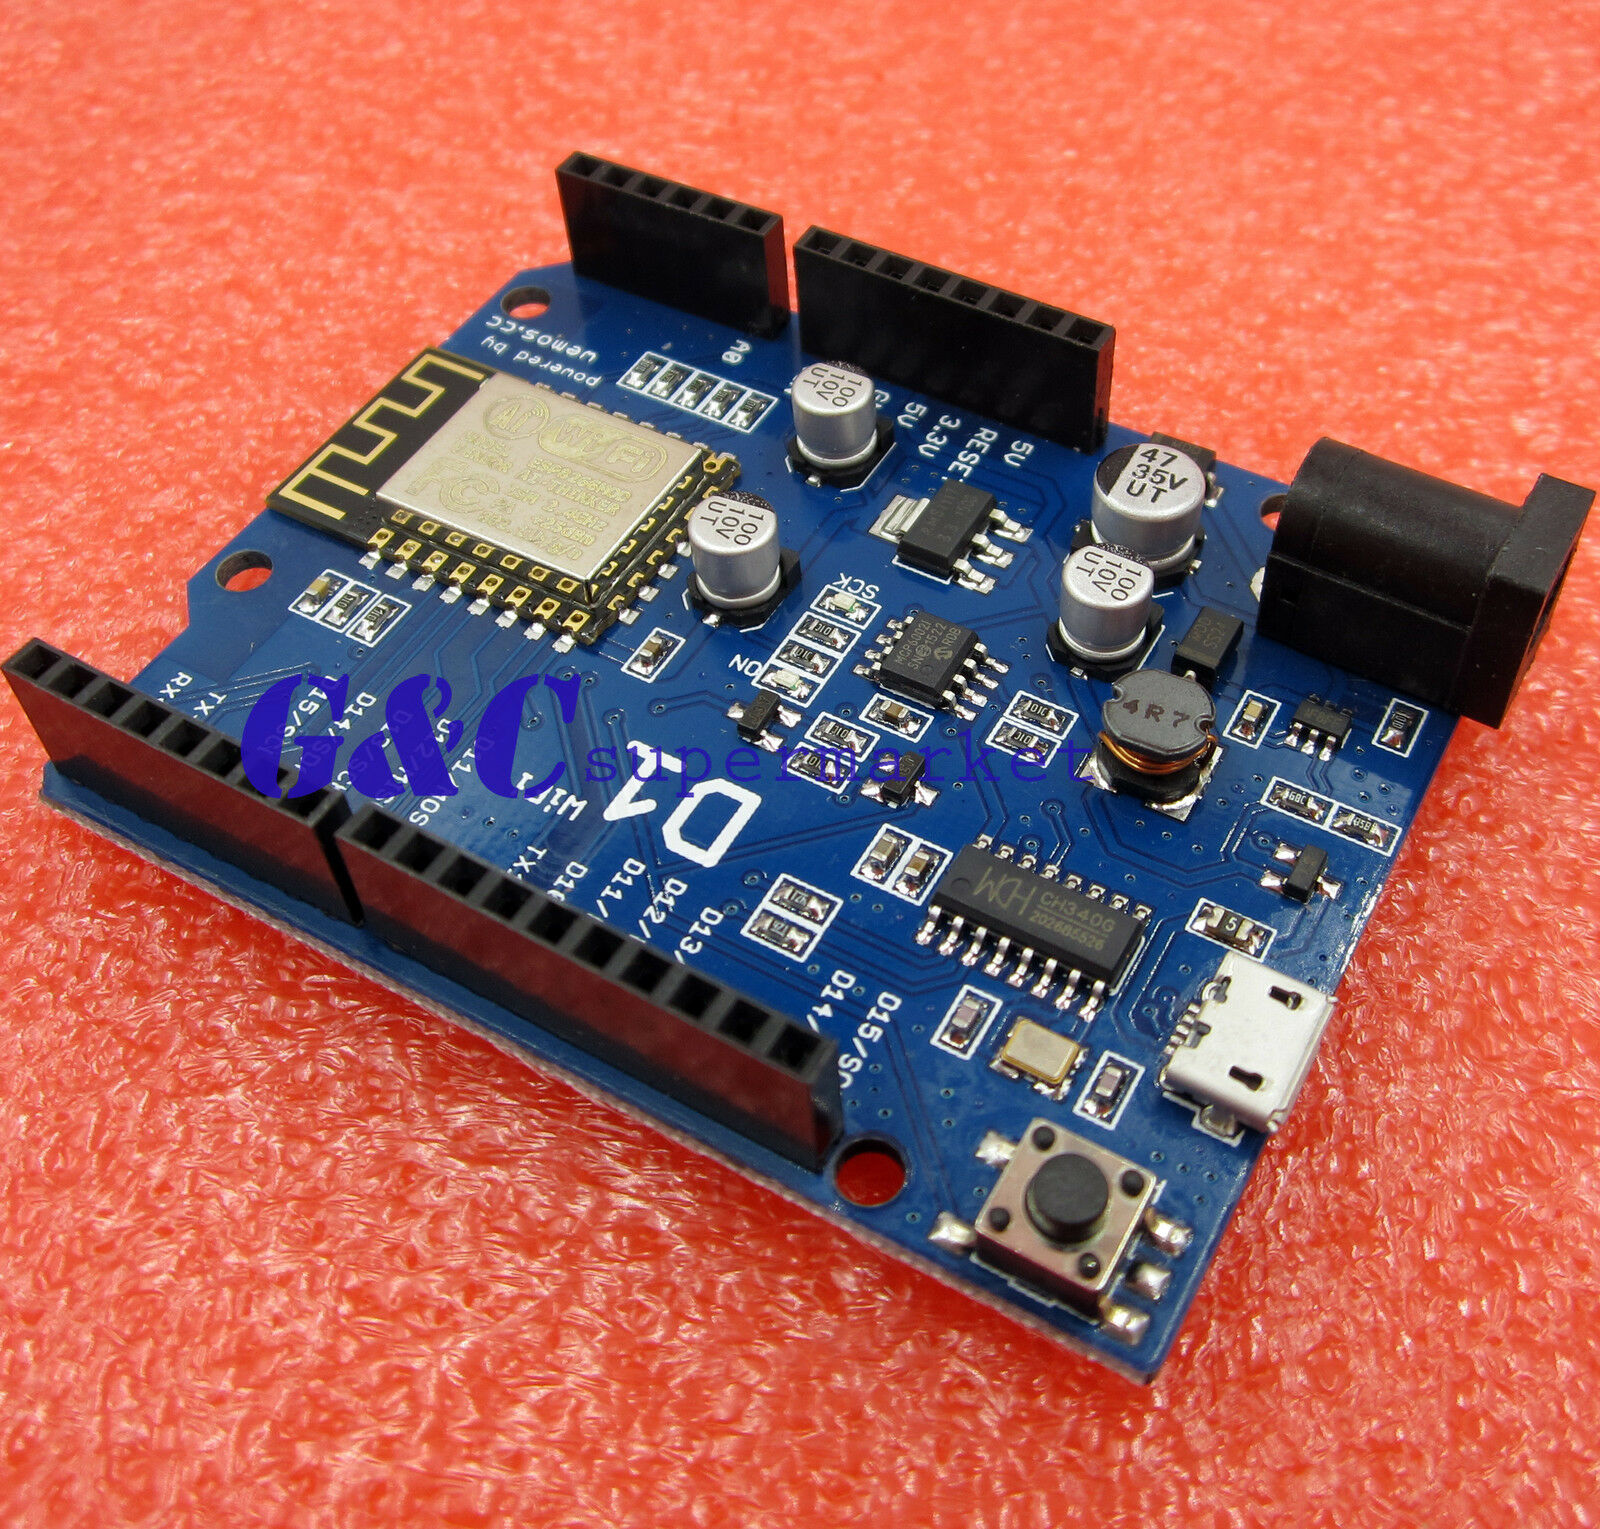 Ota Wemos D1 Ch340 Wifi Development Board Esp8266 Esp 12e For Antietching Pcb Circuit Ink Marker Pen Diy Arduino 1 Of 4 See More